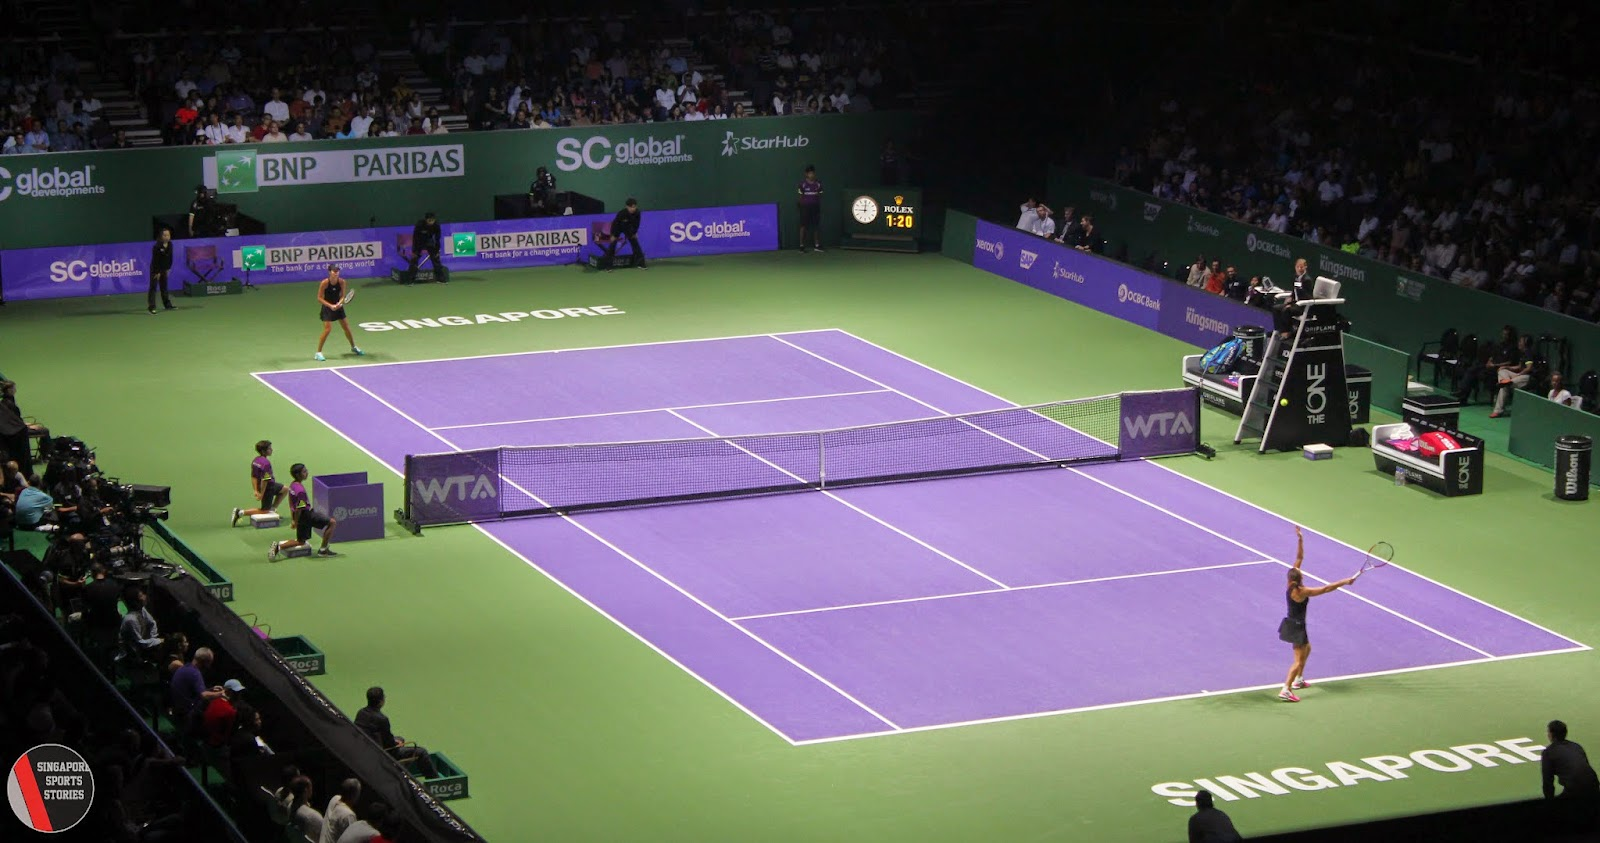 WTA Finals Singapore, Simona Halep serving against Ana Ivanovic - Tennis